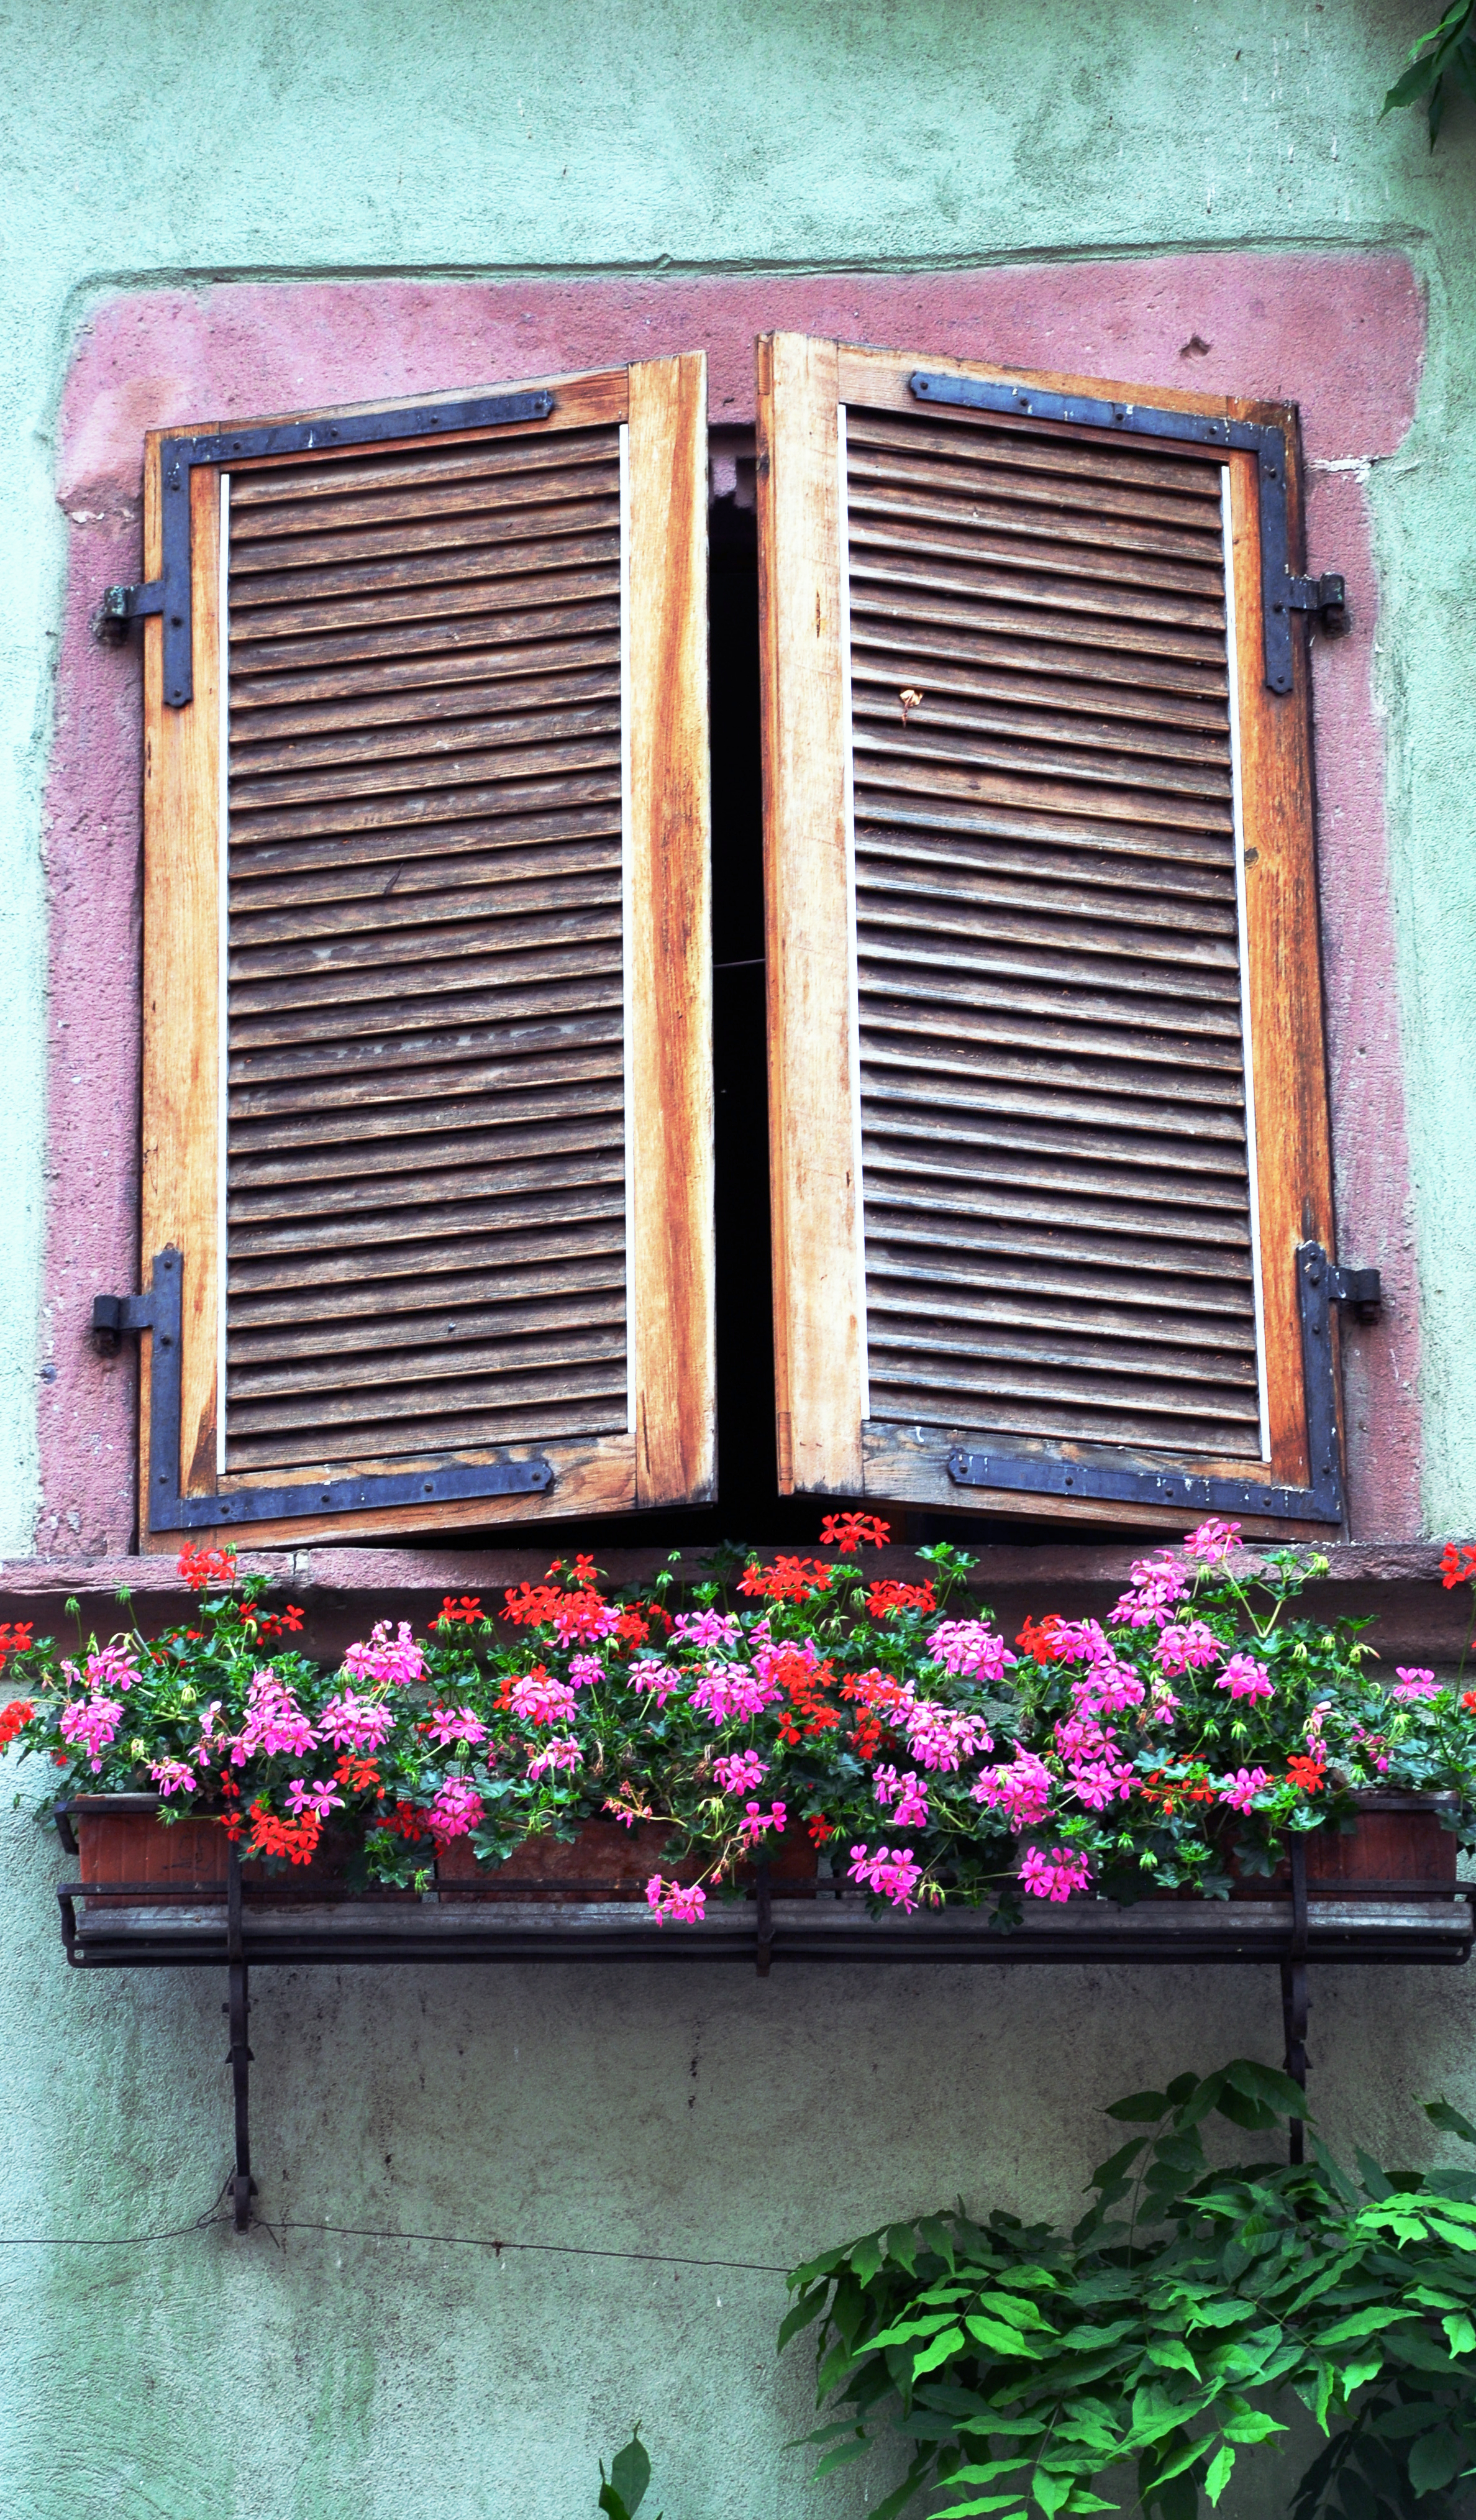 Riquewihr Window  ©Copyright 2015 Bridget Barnes